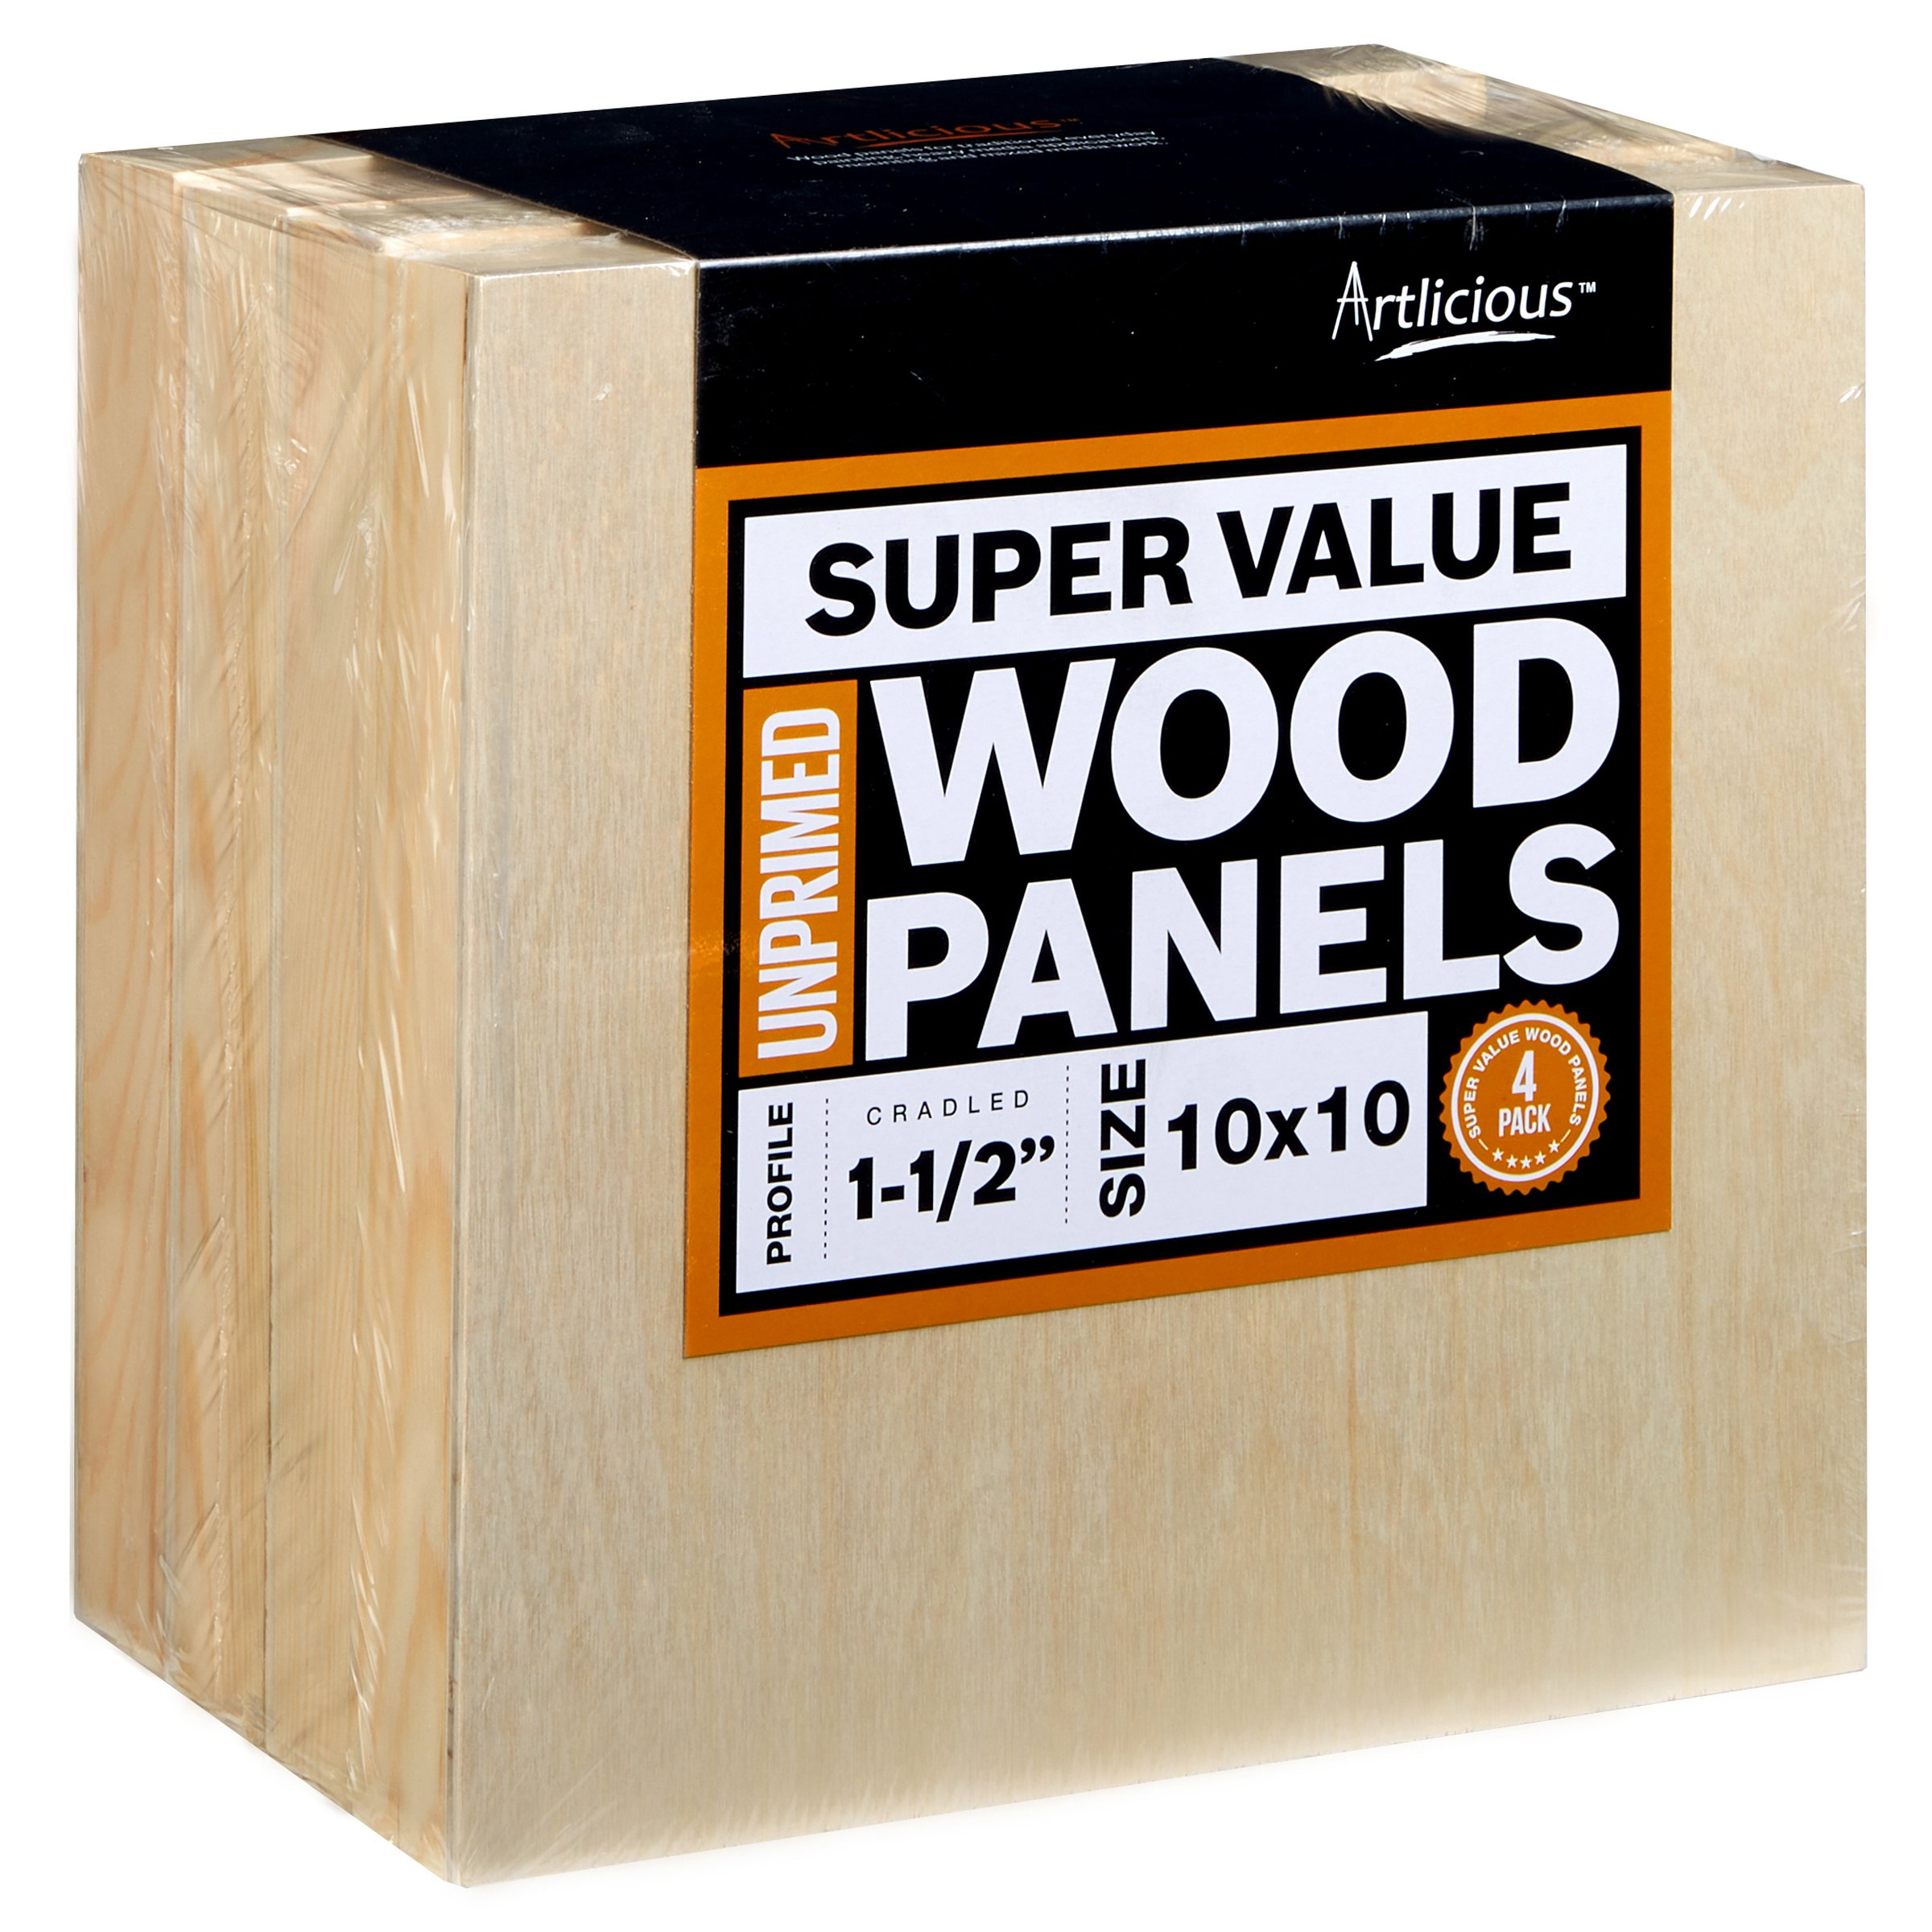 Artlicious - 4 Gallery Profile Super Value Wood Panel Boards - Great Alternative to Canvas Panels, Stretched Canvas & Canvas Rolls (10x10, Gallery Profile)